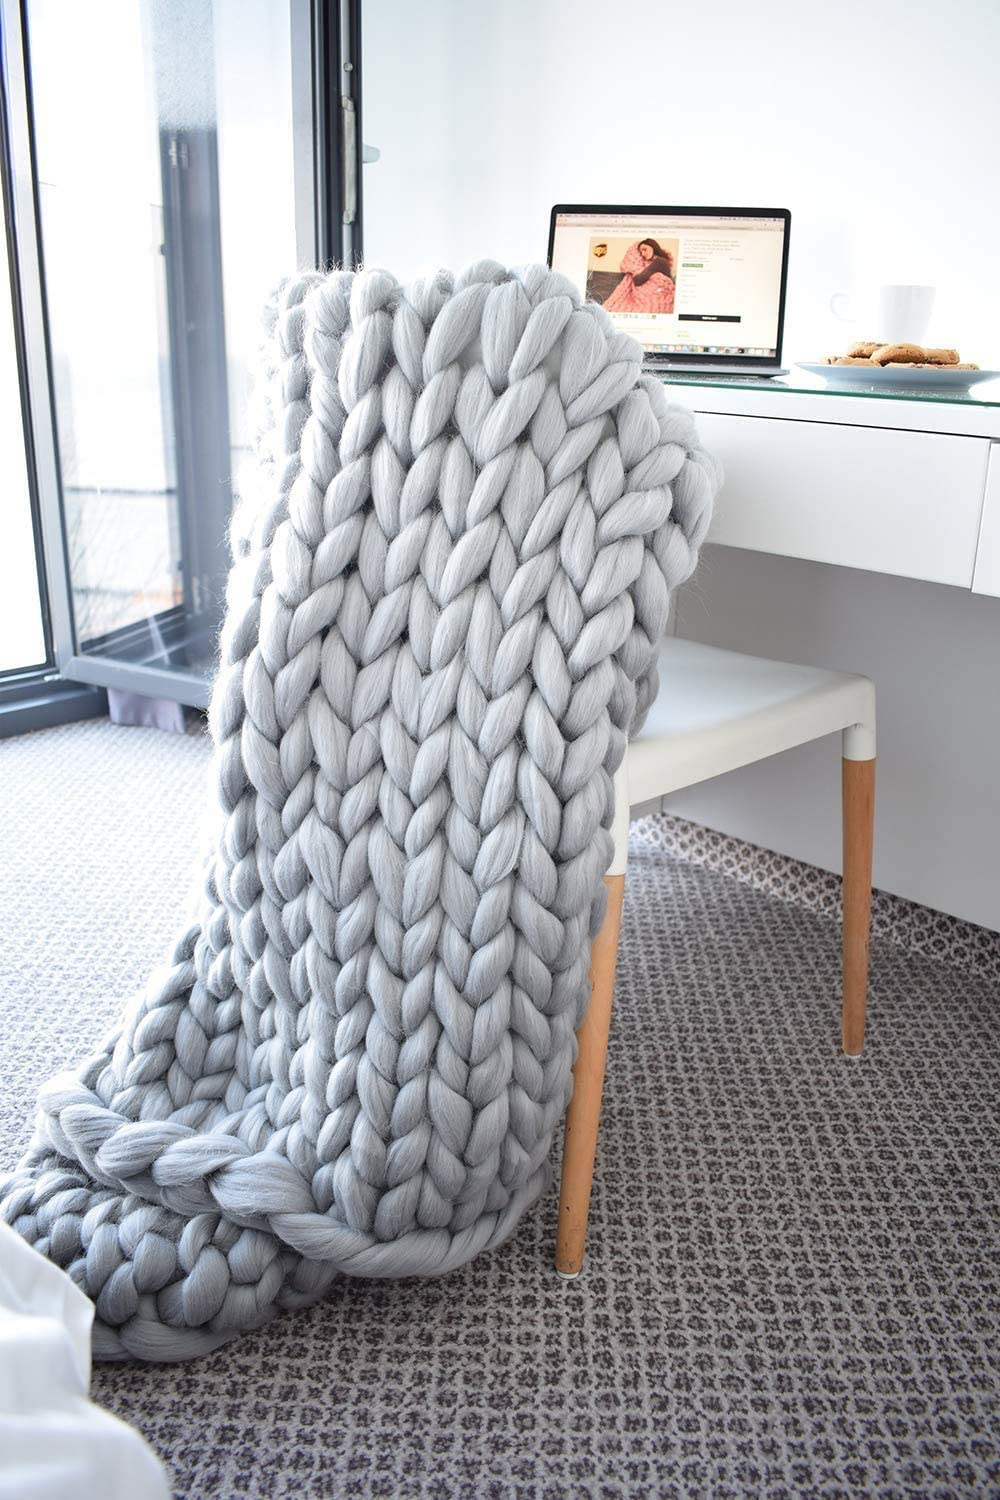 Chunky Knit Blanket - Bed Throw Blankets, Super Soft Cozy Throw Wool Blanket,Thermal Blanket,All Season Warm Plush Blanket - Perfect for Layering Any Bed and Couch(Grey,47